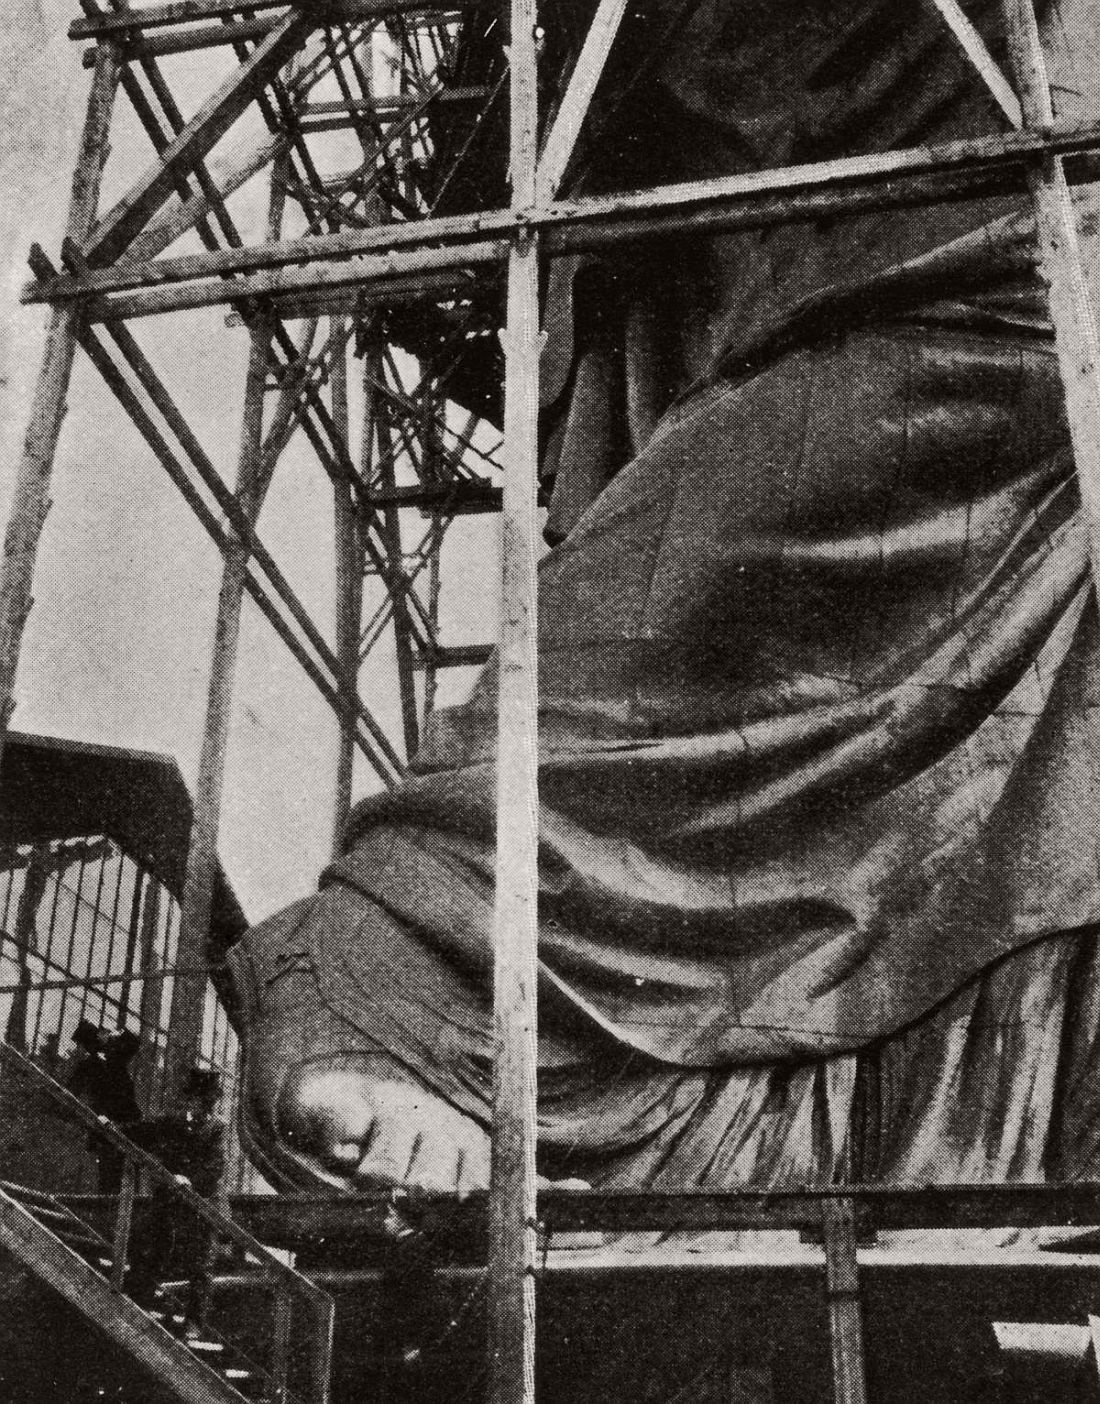 vintage-images-of-statue-of-liberty-under-construction-1880s-51